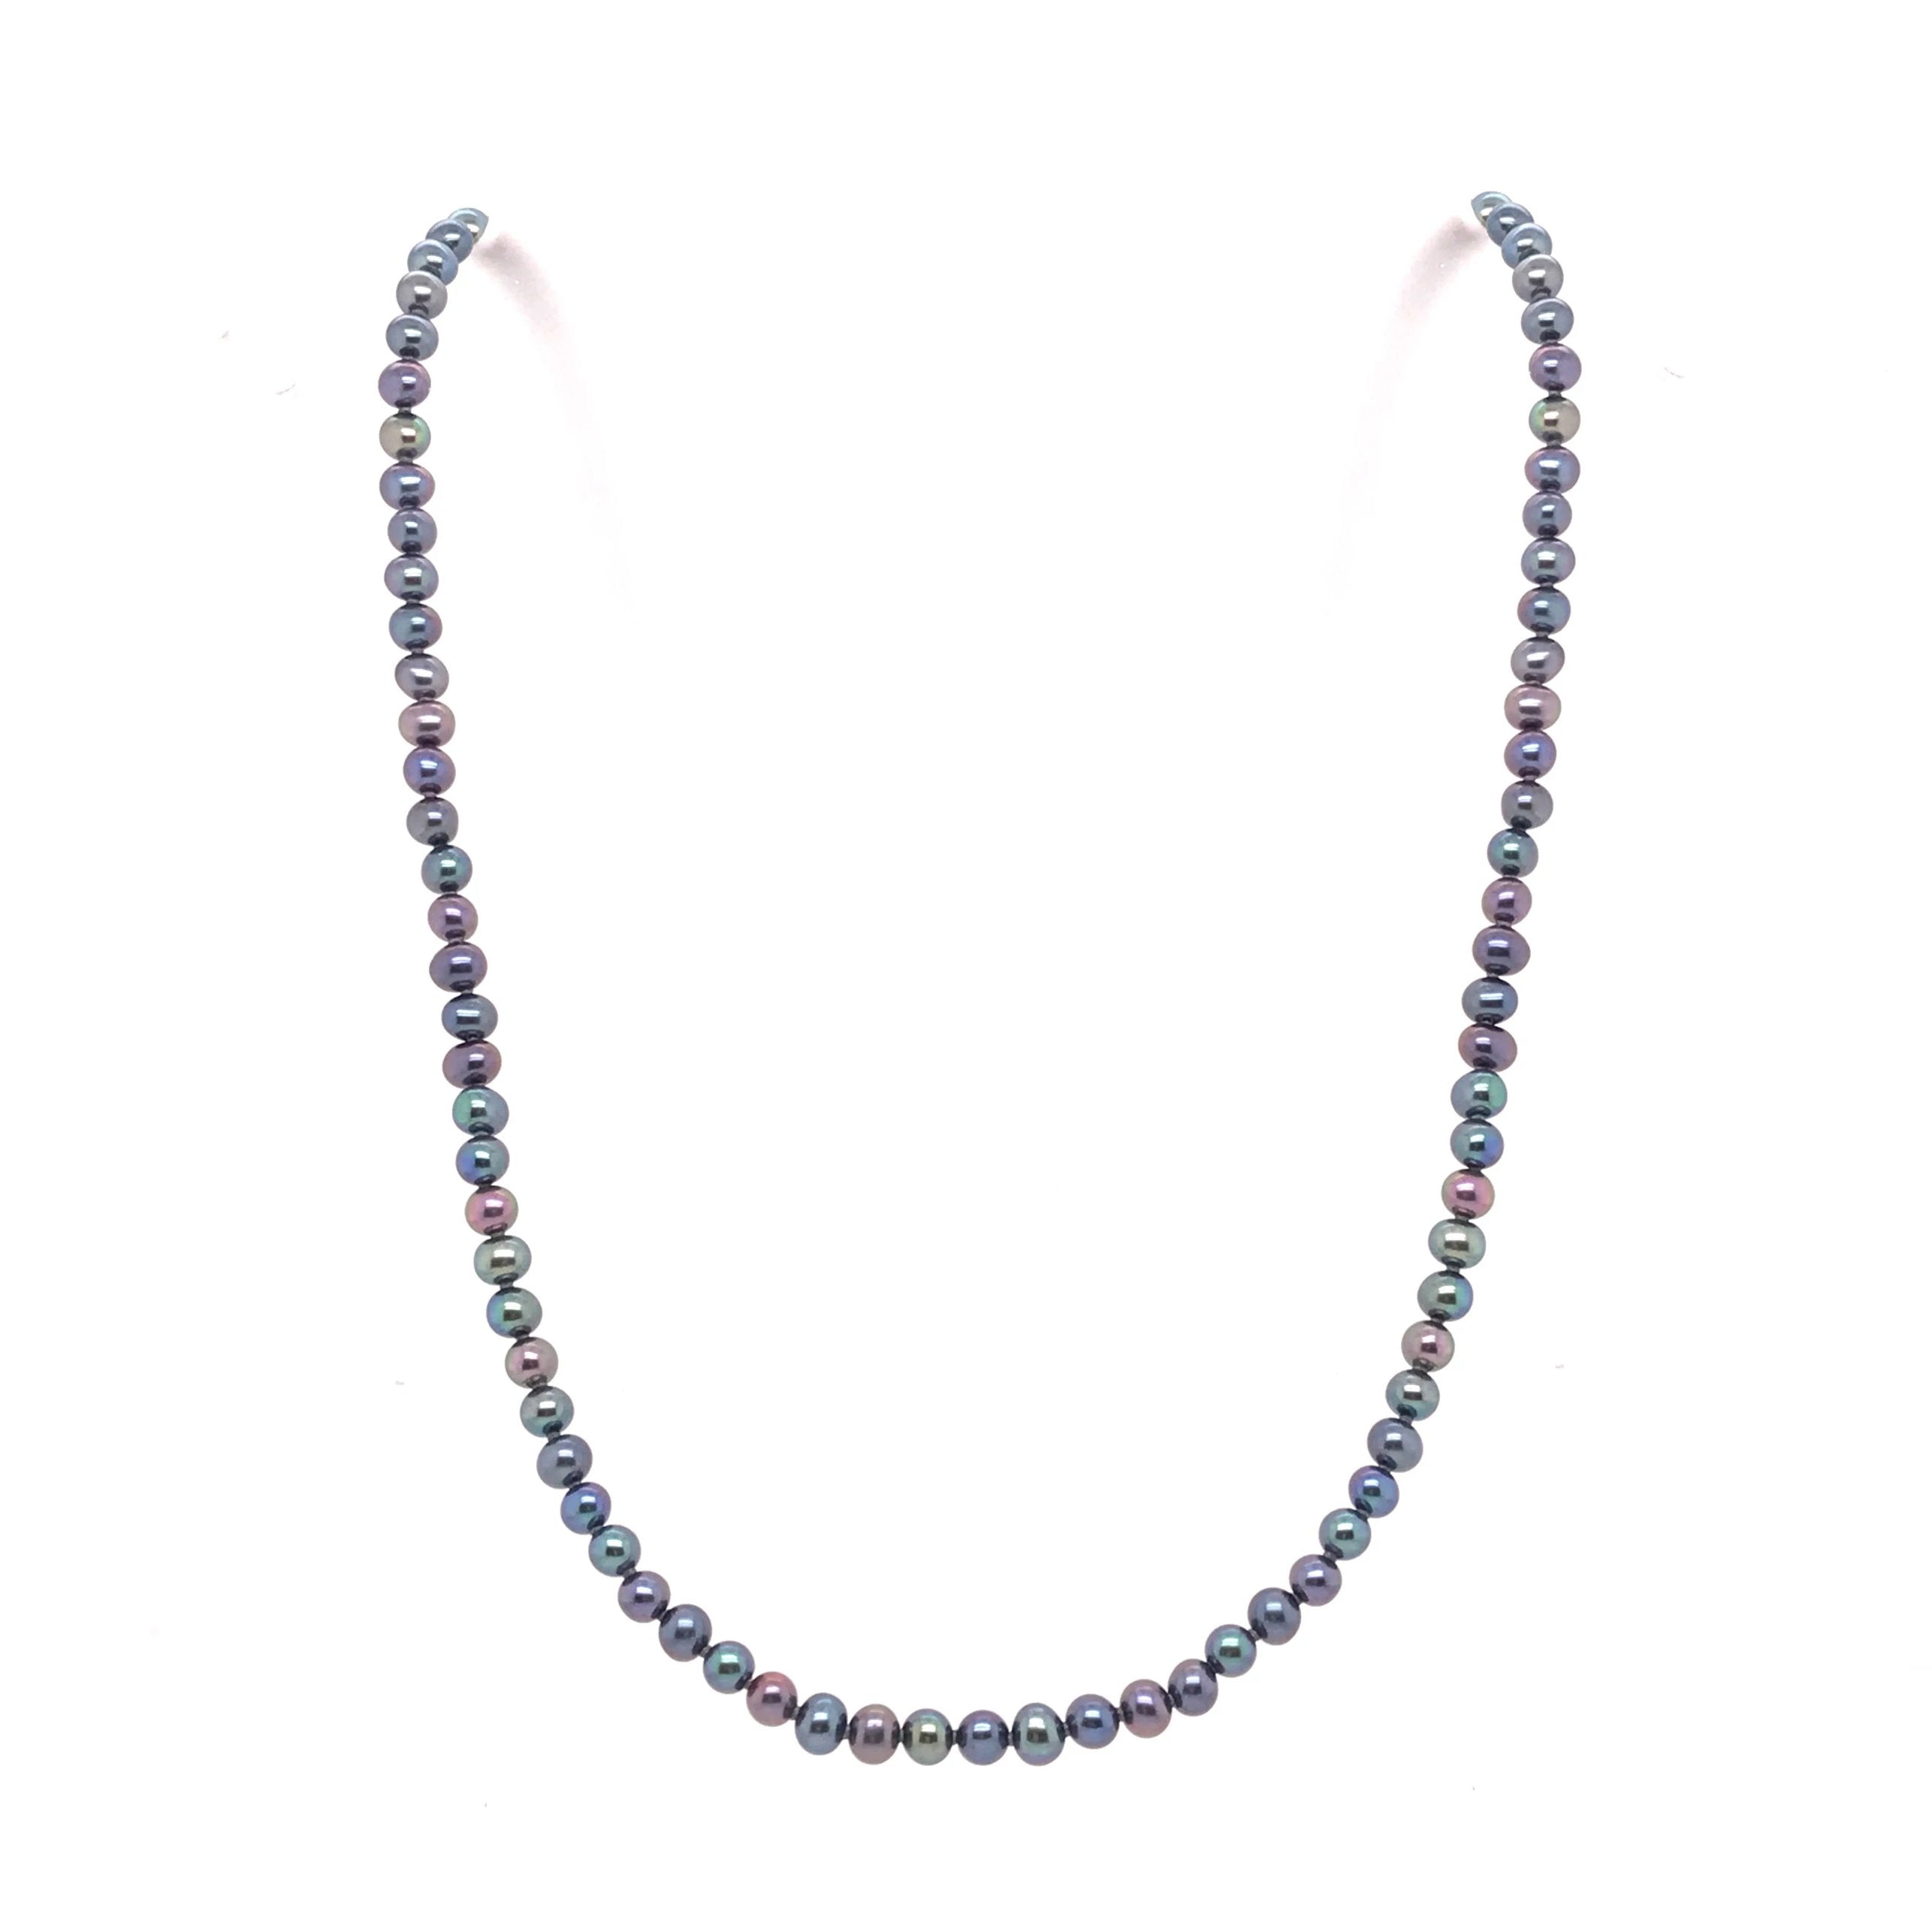 Silver Freshwater Black Pearl Necklace - Andrew Scott